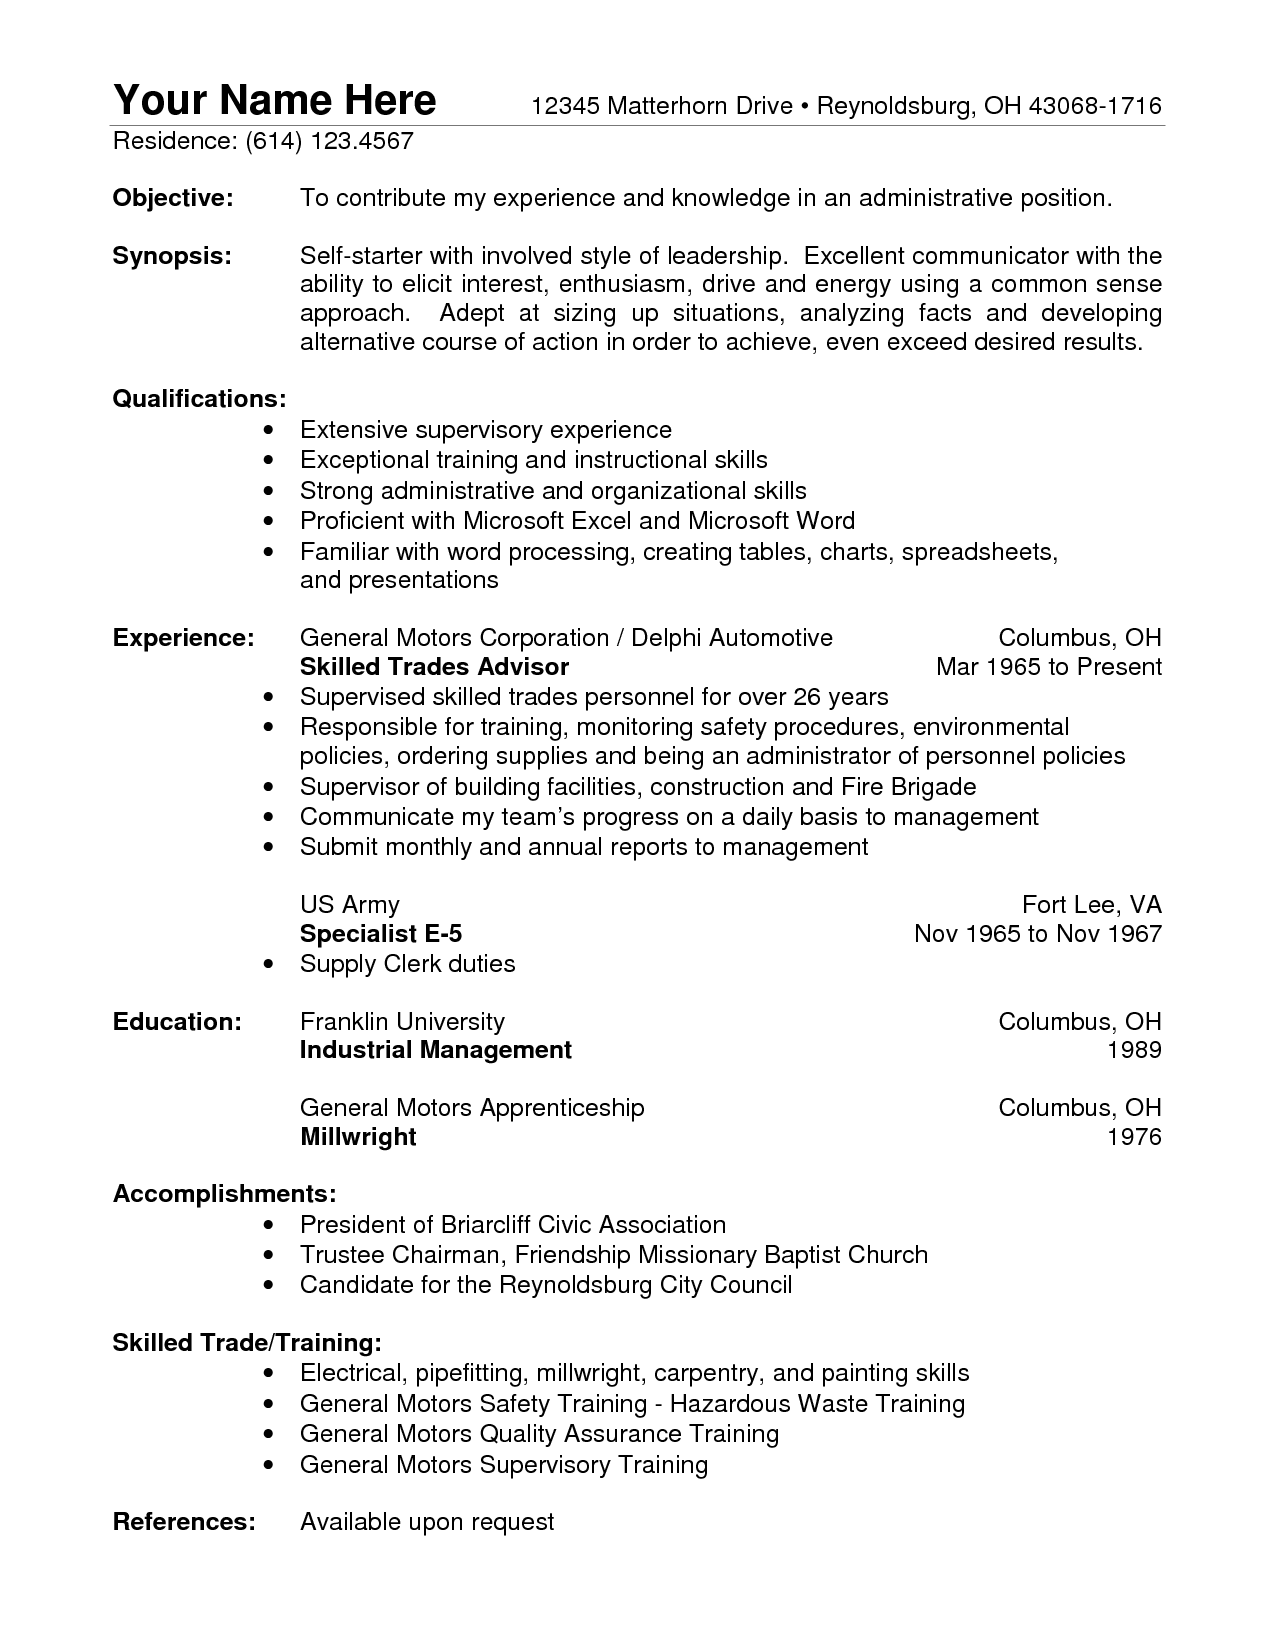 Worker Job Description Monster Resume Sample Supervisor Warehouse Objective  Warehouse Job Description For Resume